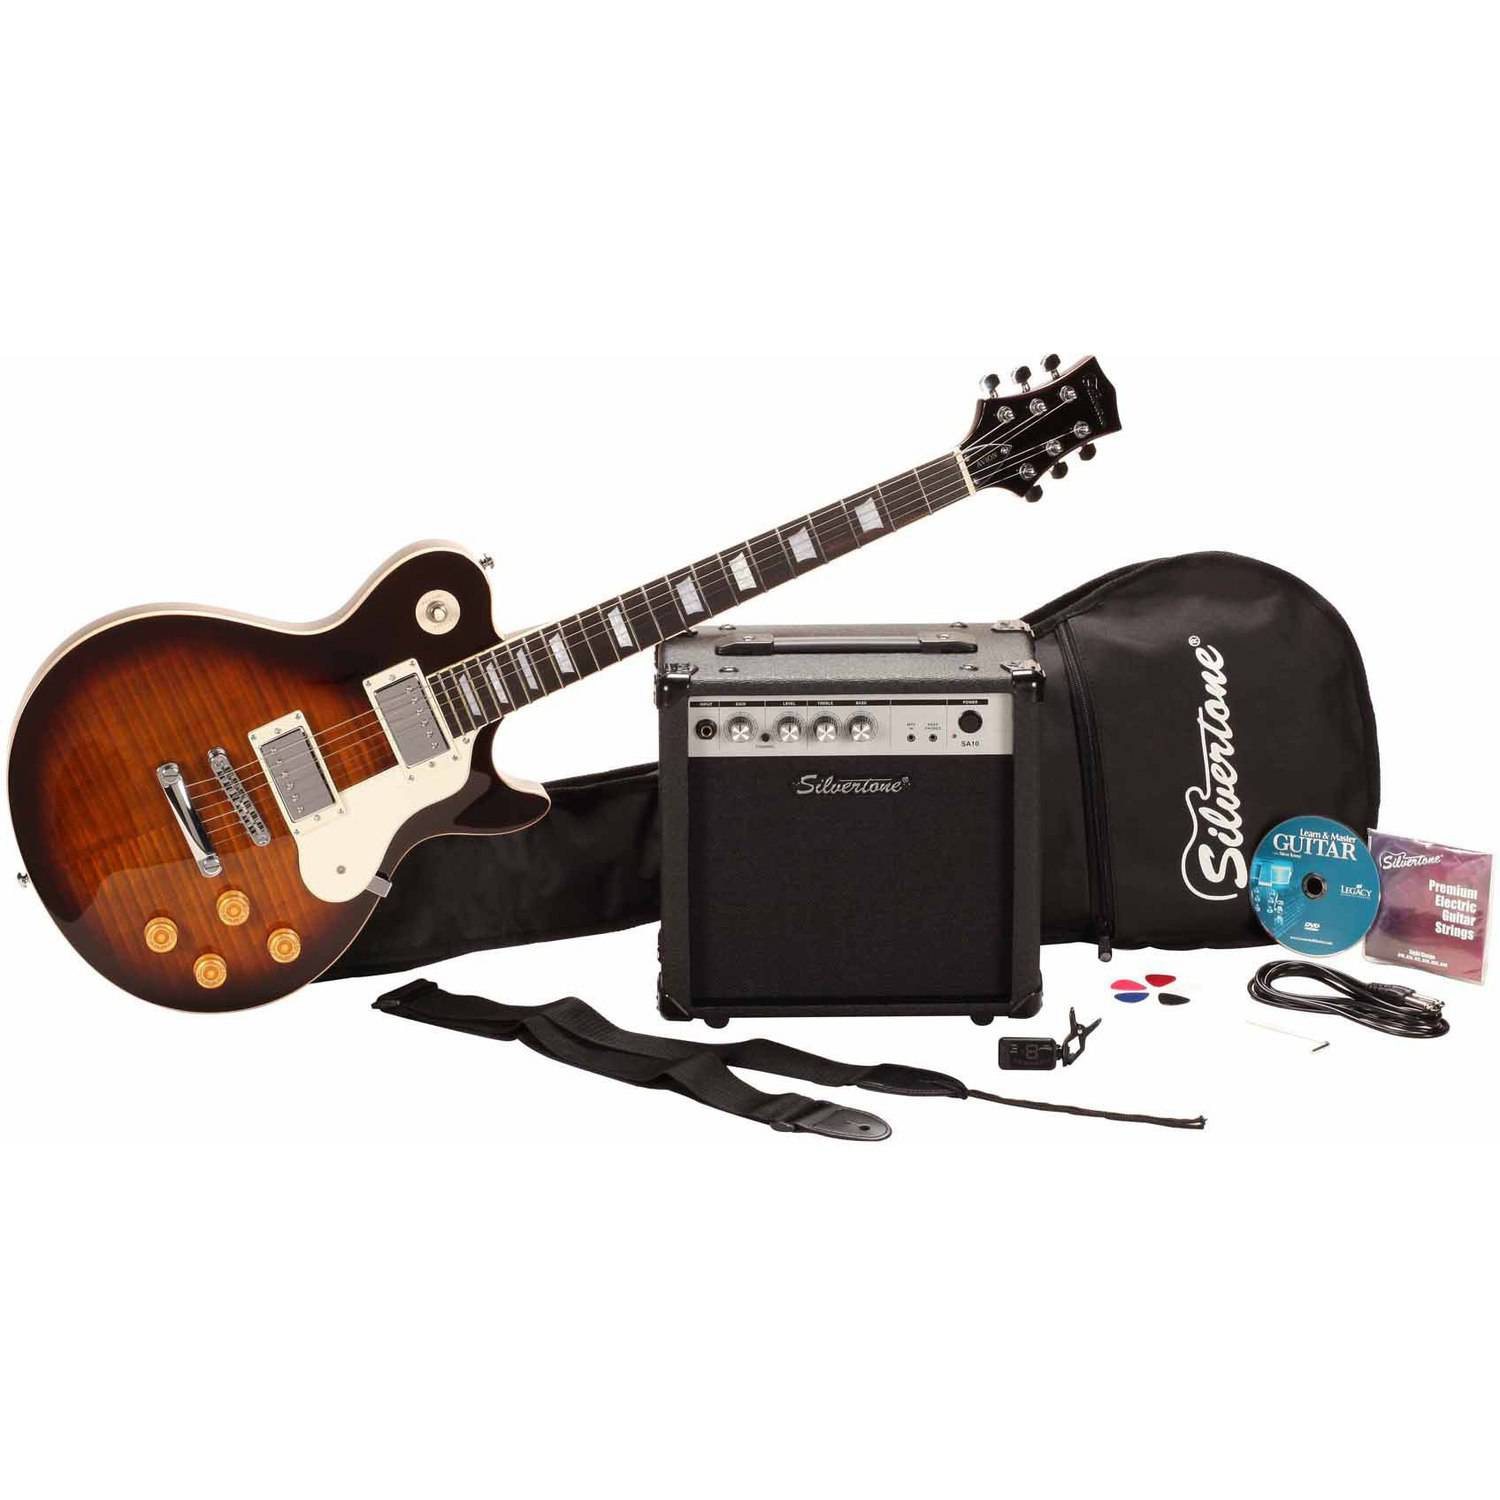 Silvertone Guitars SSL3 Electric Guitar Package